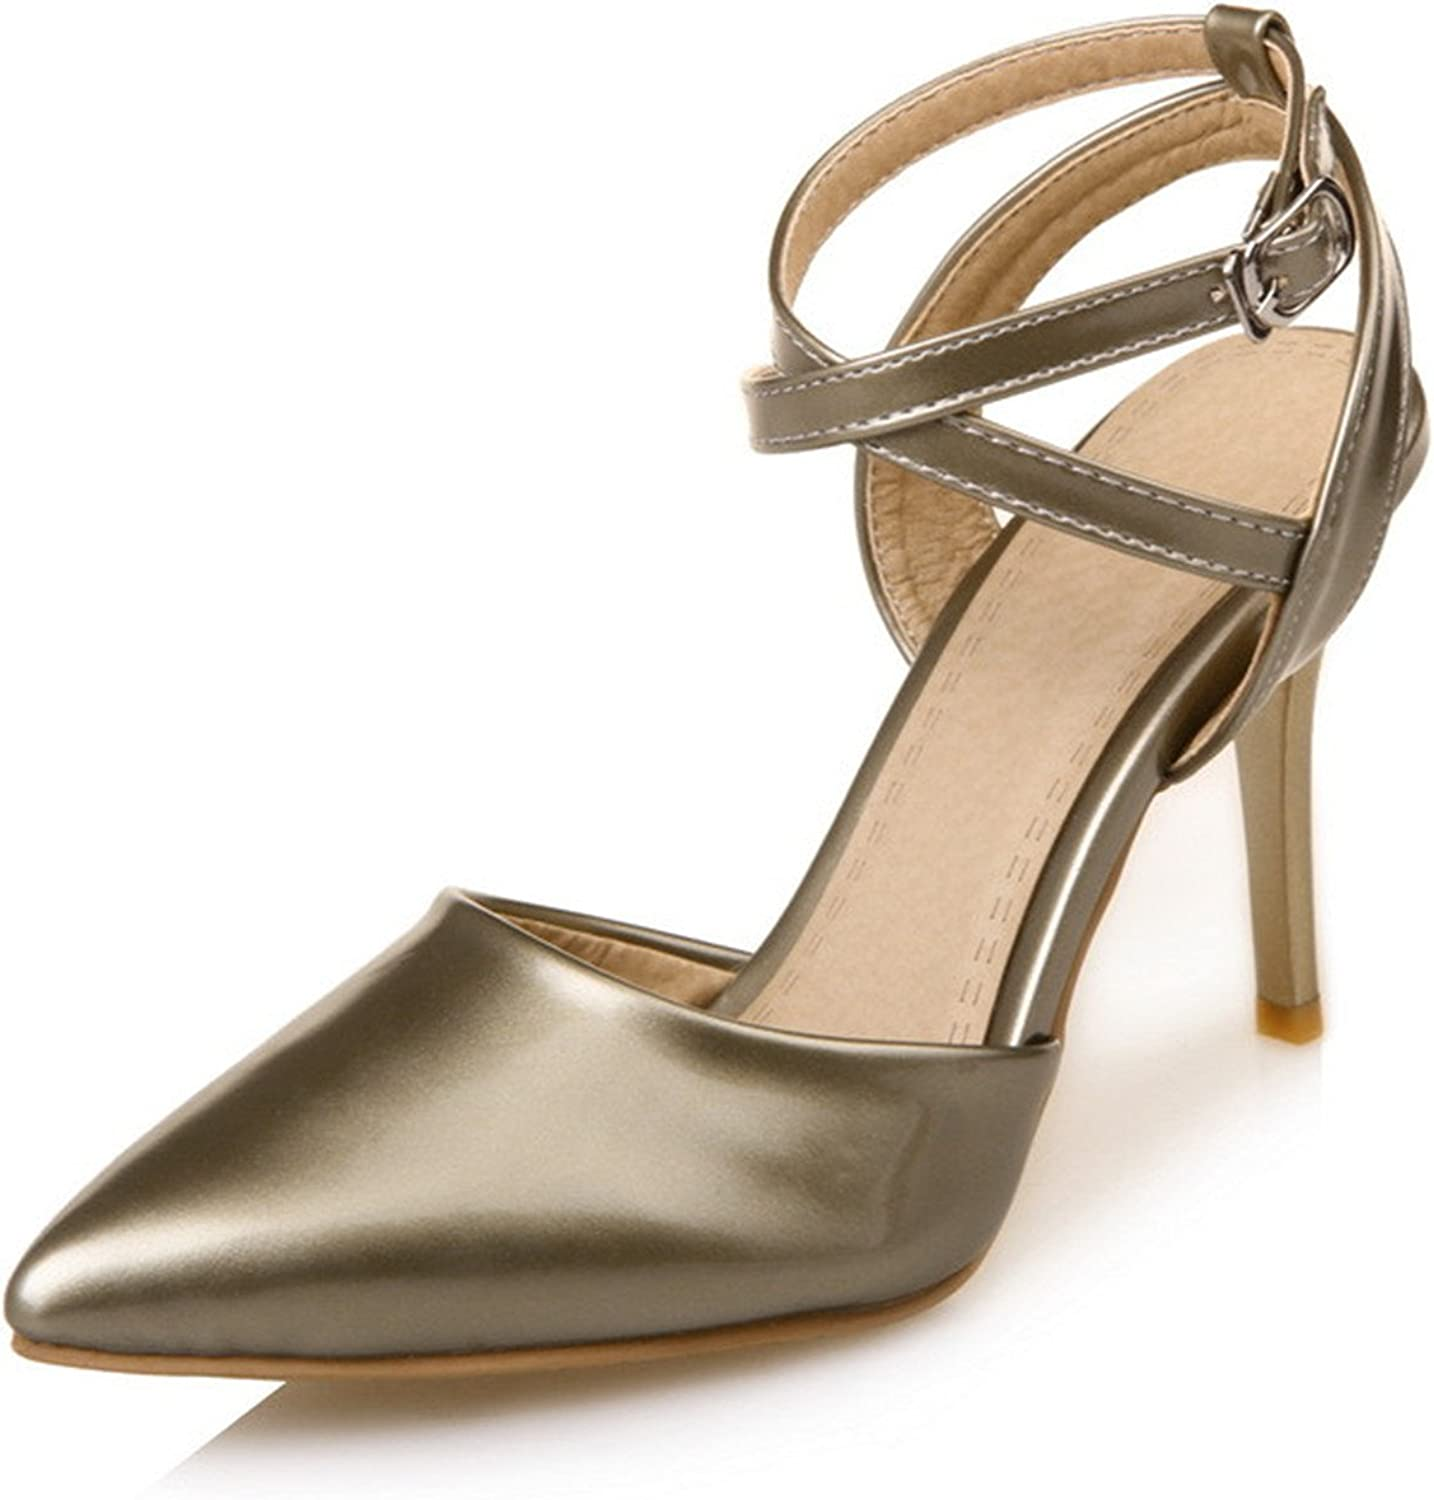 Gome-z gold Silver Pink Black Women shoes High Heel Cross Strap Slingbacks Stiletto Lady High Heels Mary Jane shoes Summer 2018